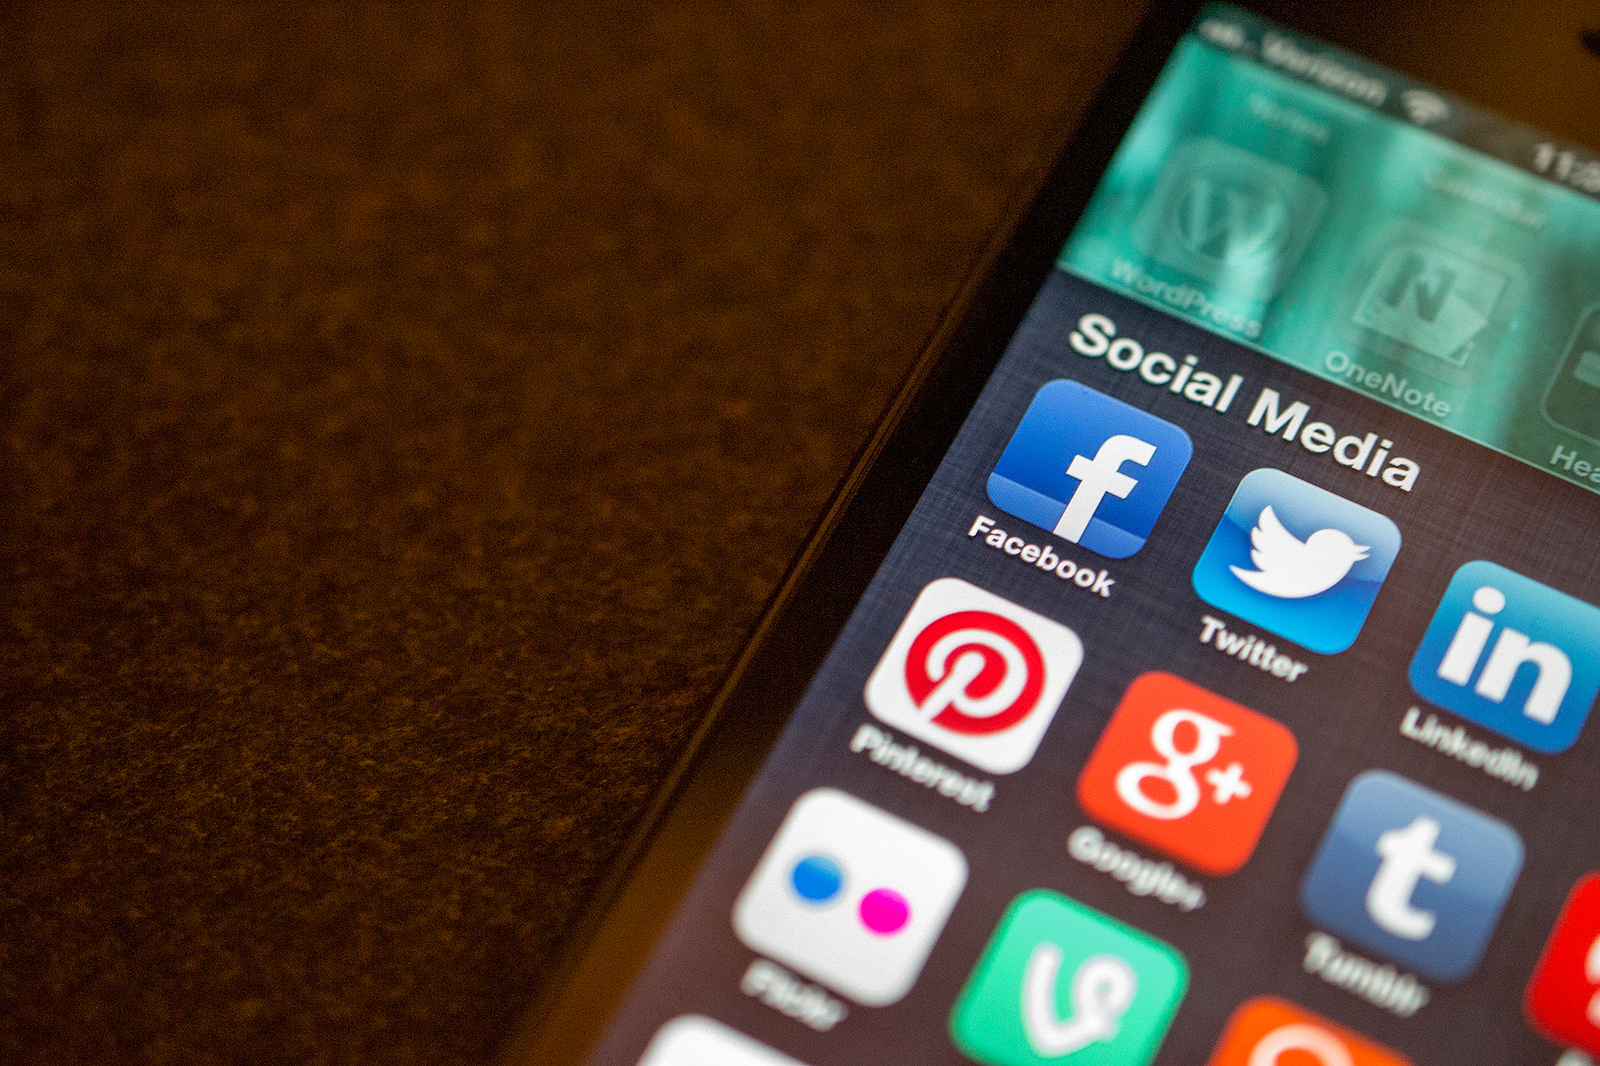 While social media apps are often necessary in business today, the ones in this article will actually help you improve productivity ... photo by CC user jasonahowie on Flickr